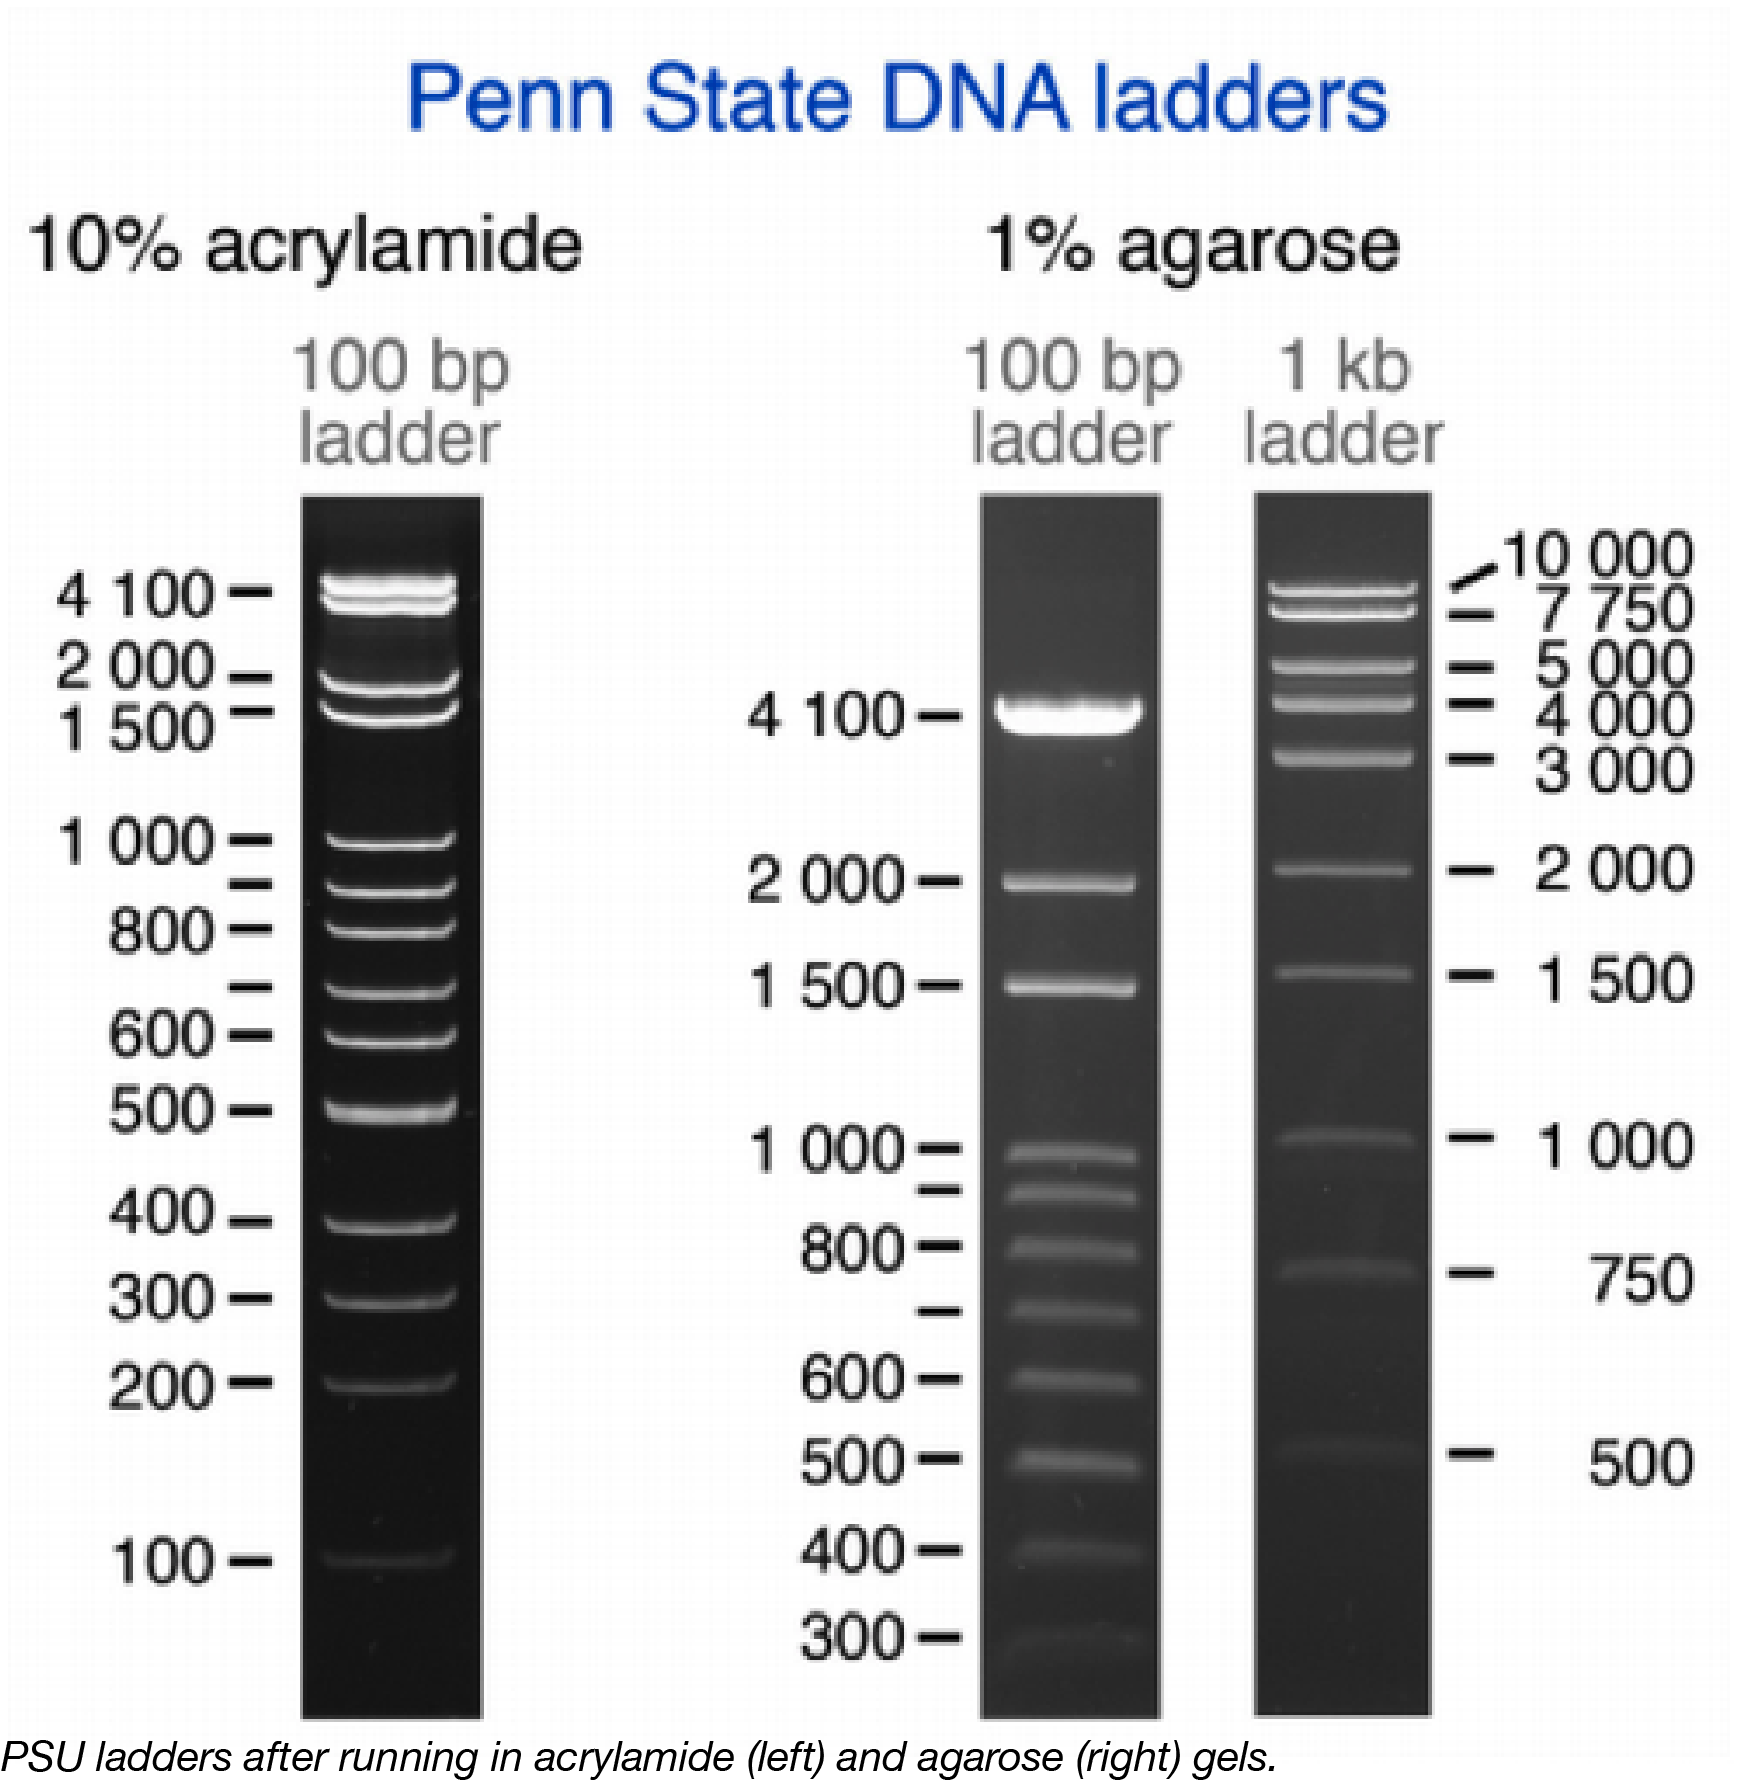 Penn State DNA Ladders